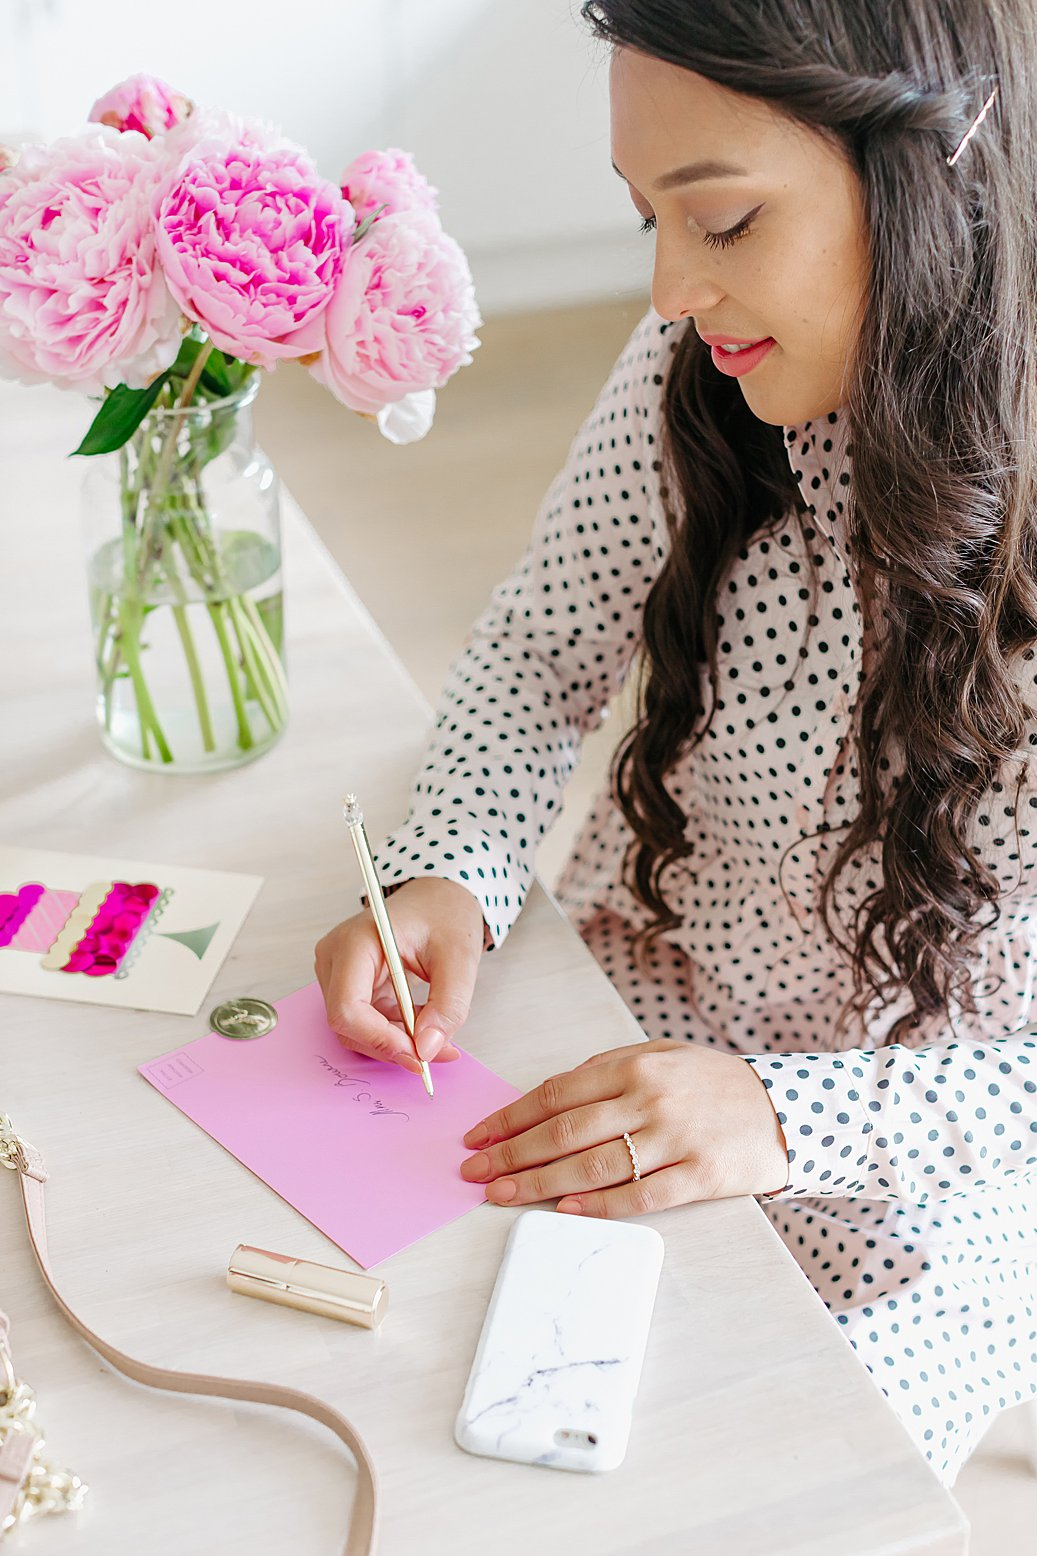 Colourful content creation for Papyrus stationery. Product & lifestyle photography by Marianne Taylor.